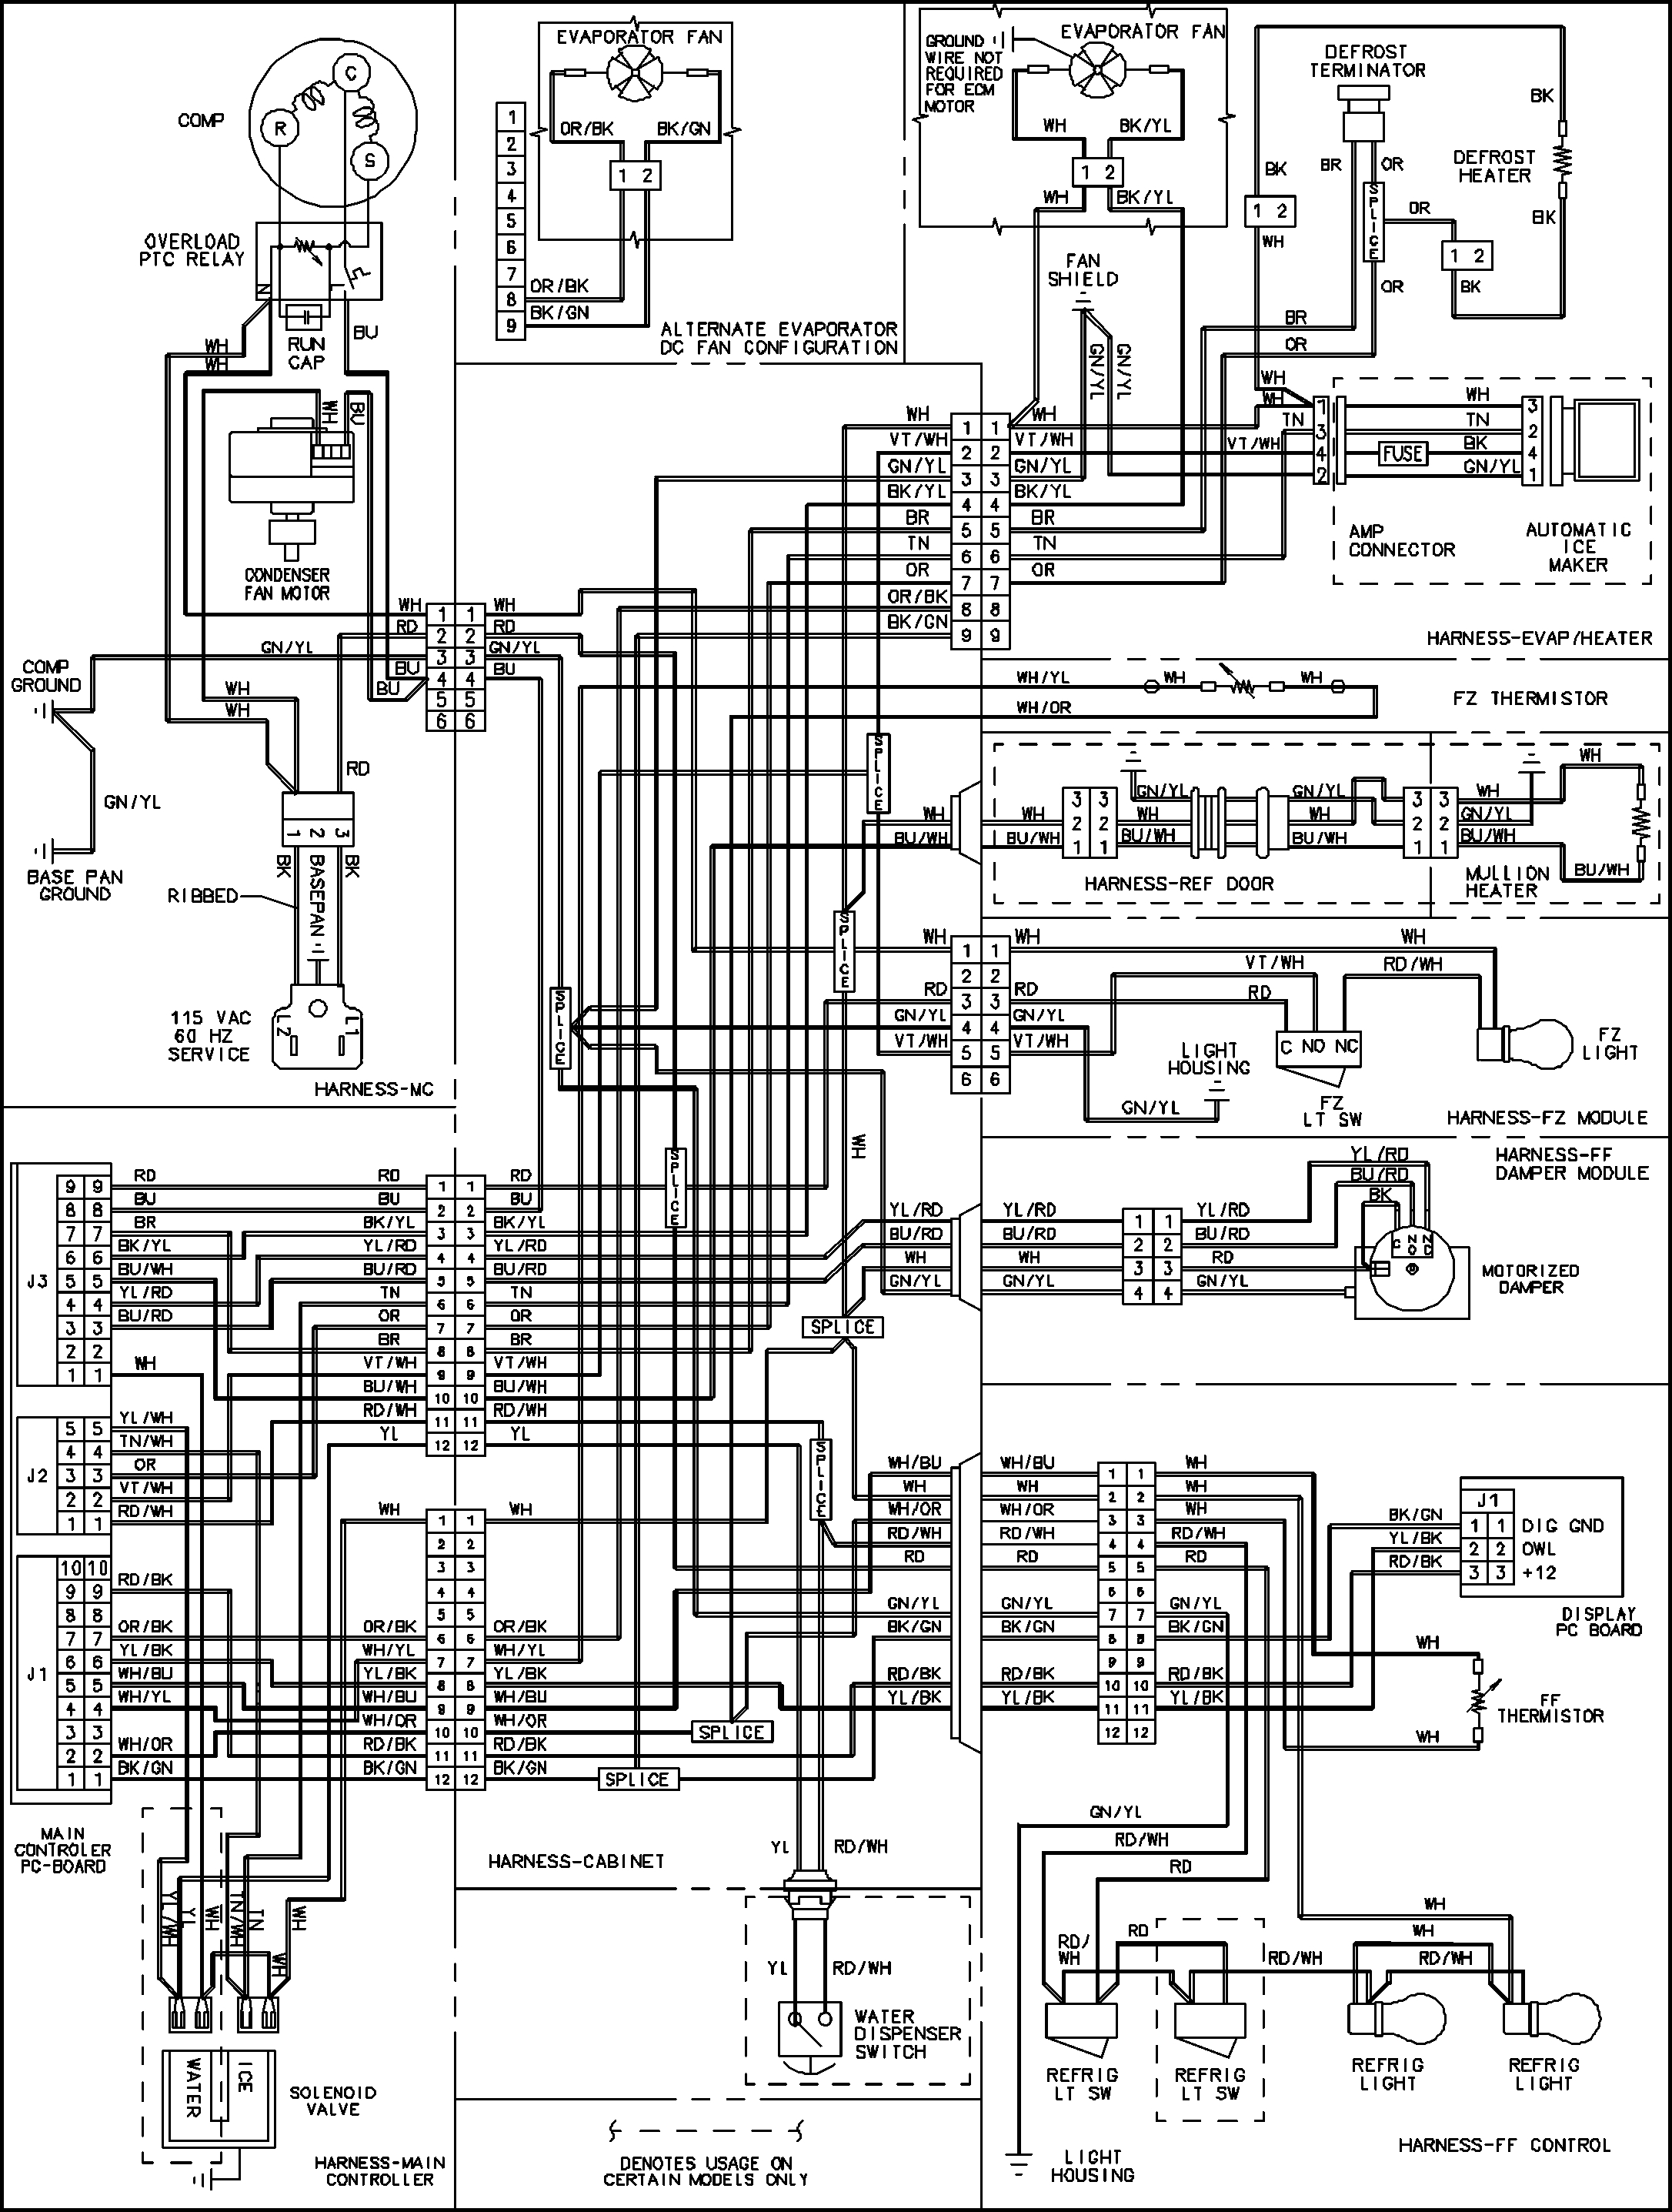 Walk In Freezer Condenser Schematic Diagram. . Wiring Diagram Walk In Freezer Wiring Diagram Condensor on